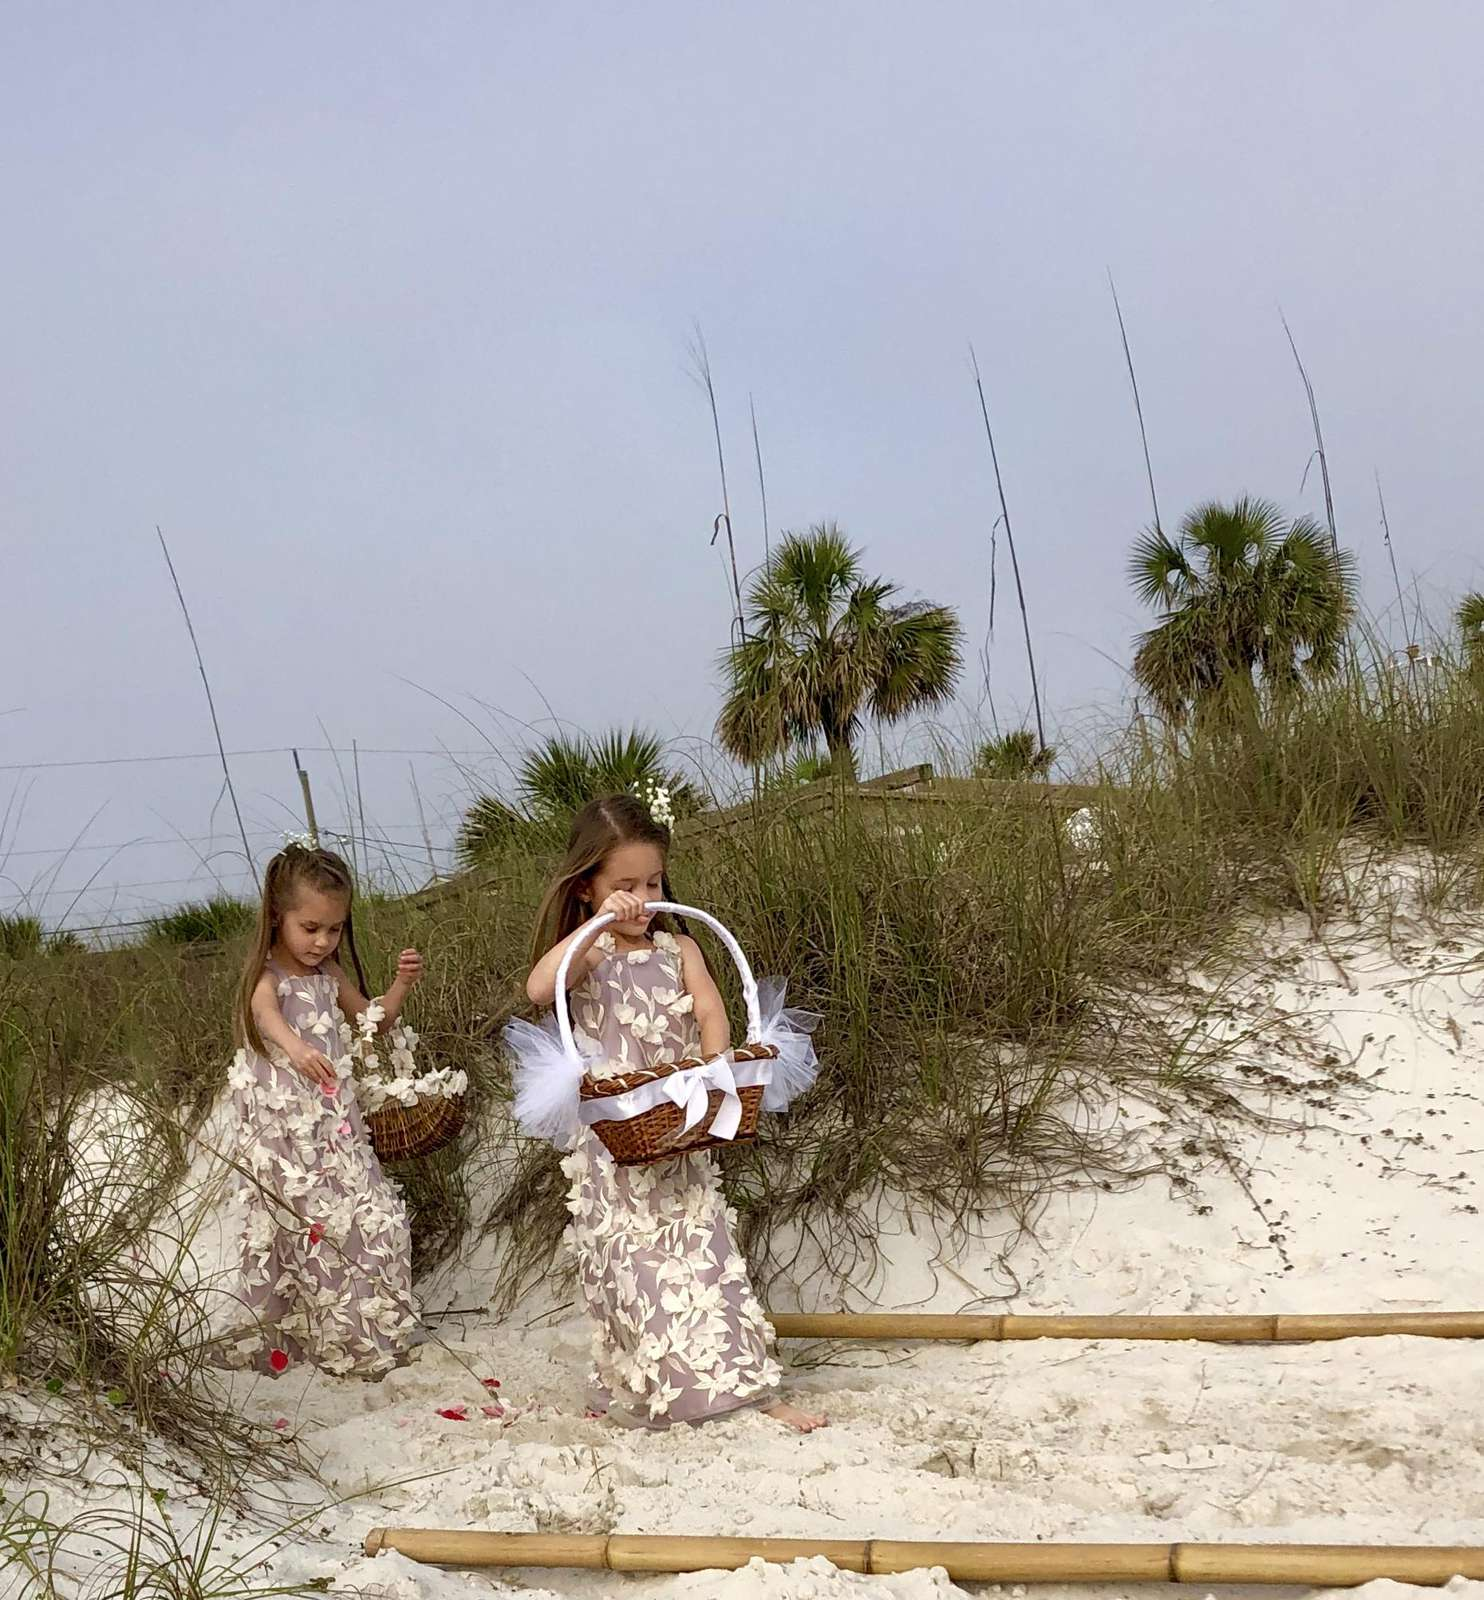 Flower girls making their way to the beach